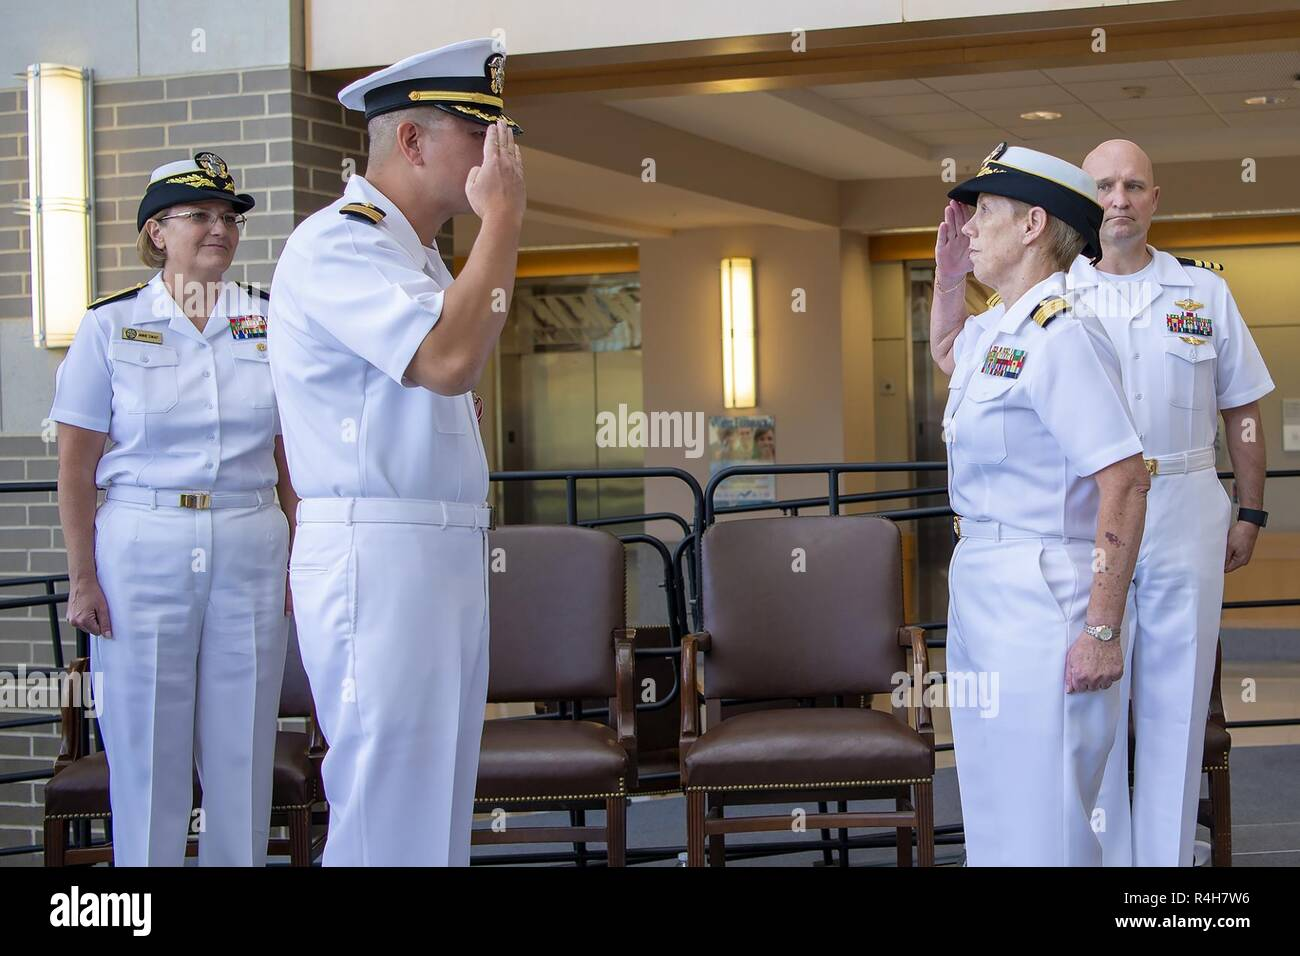 Kathleen A. Hinz, right, assumes command of Naval Health Clinic Patuxent River from Capt. James C. Young, left, during a change of command ceremony held at the Rear Adm. William A. Moffett Building, September 28. - Stock Image